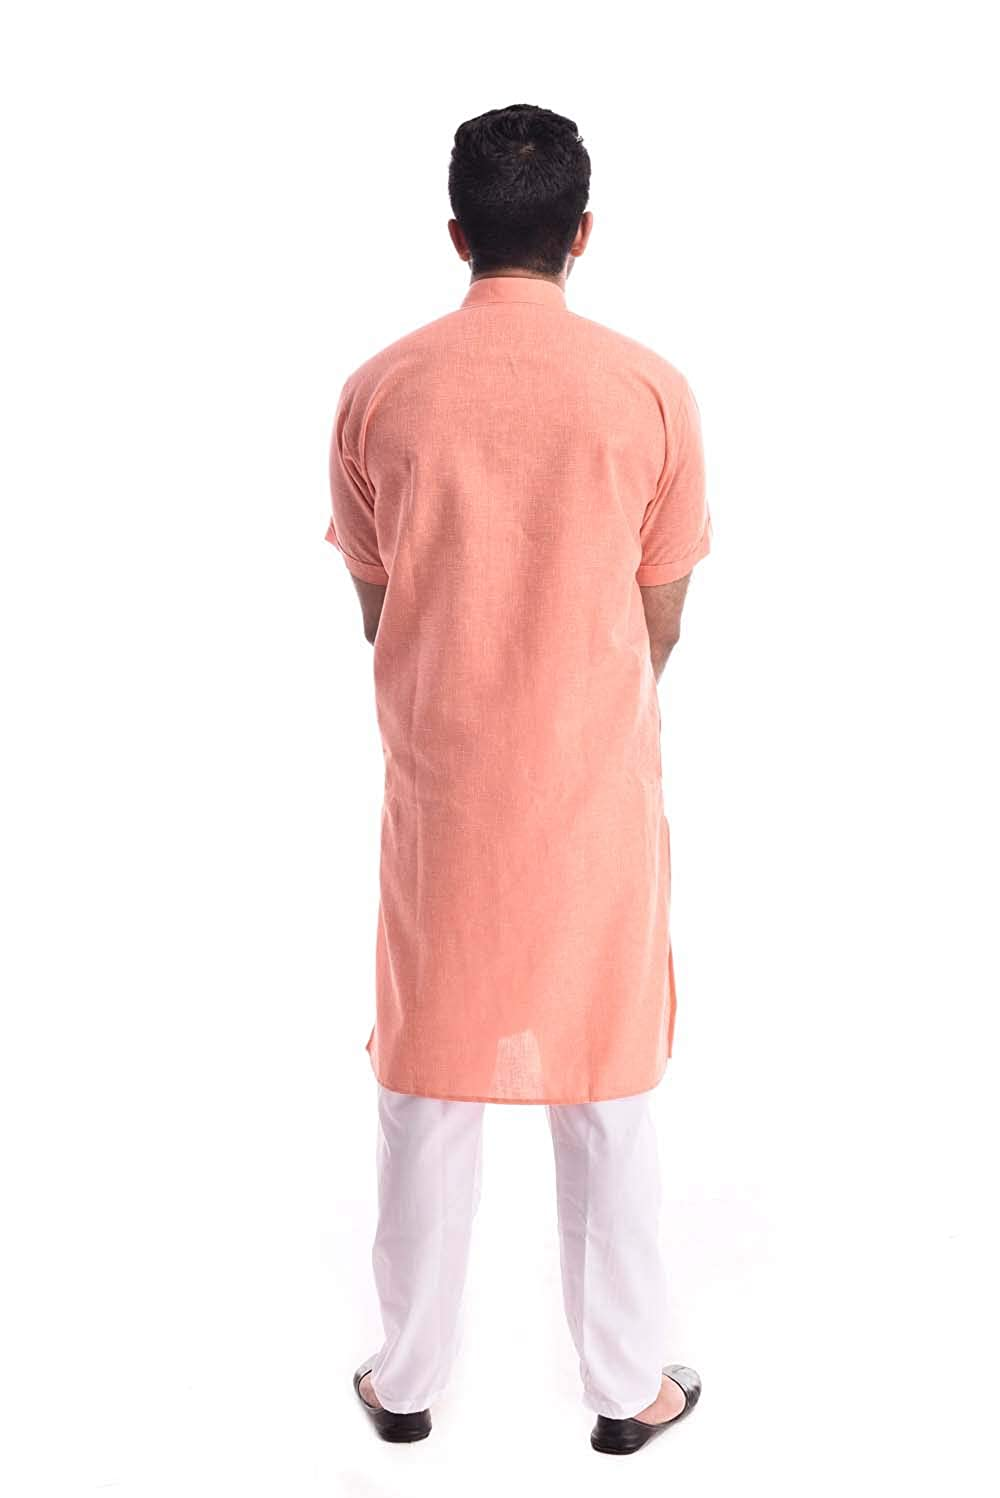 882024f55d4 Royal Kurta Mens Linen Half Sleeve Kurta Pyjama  Amazon.in  Clothing    Accessories